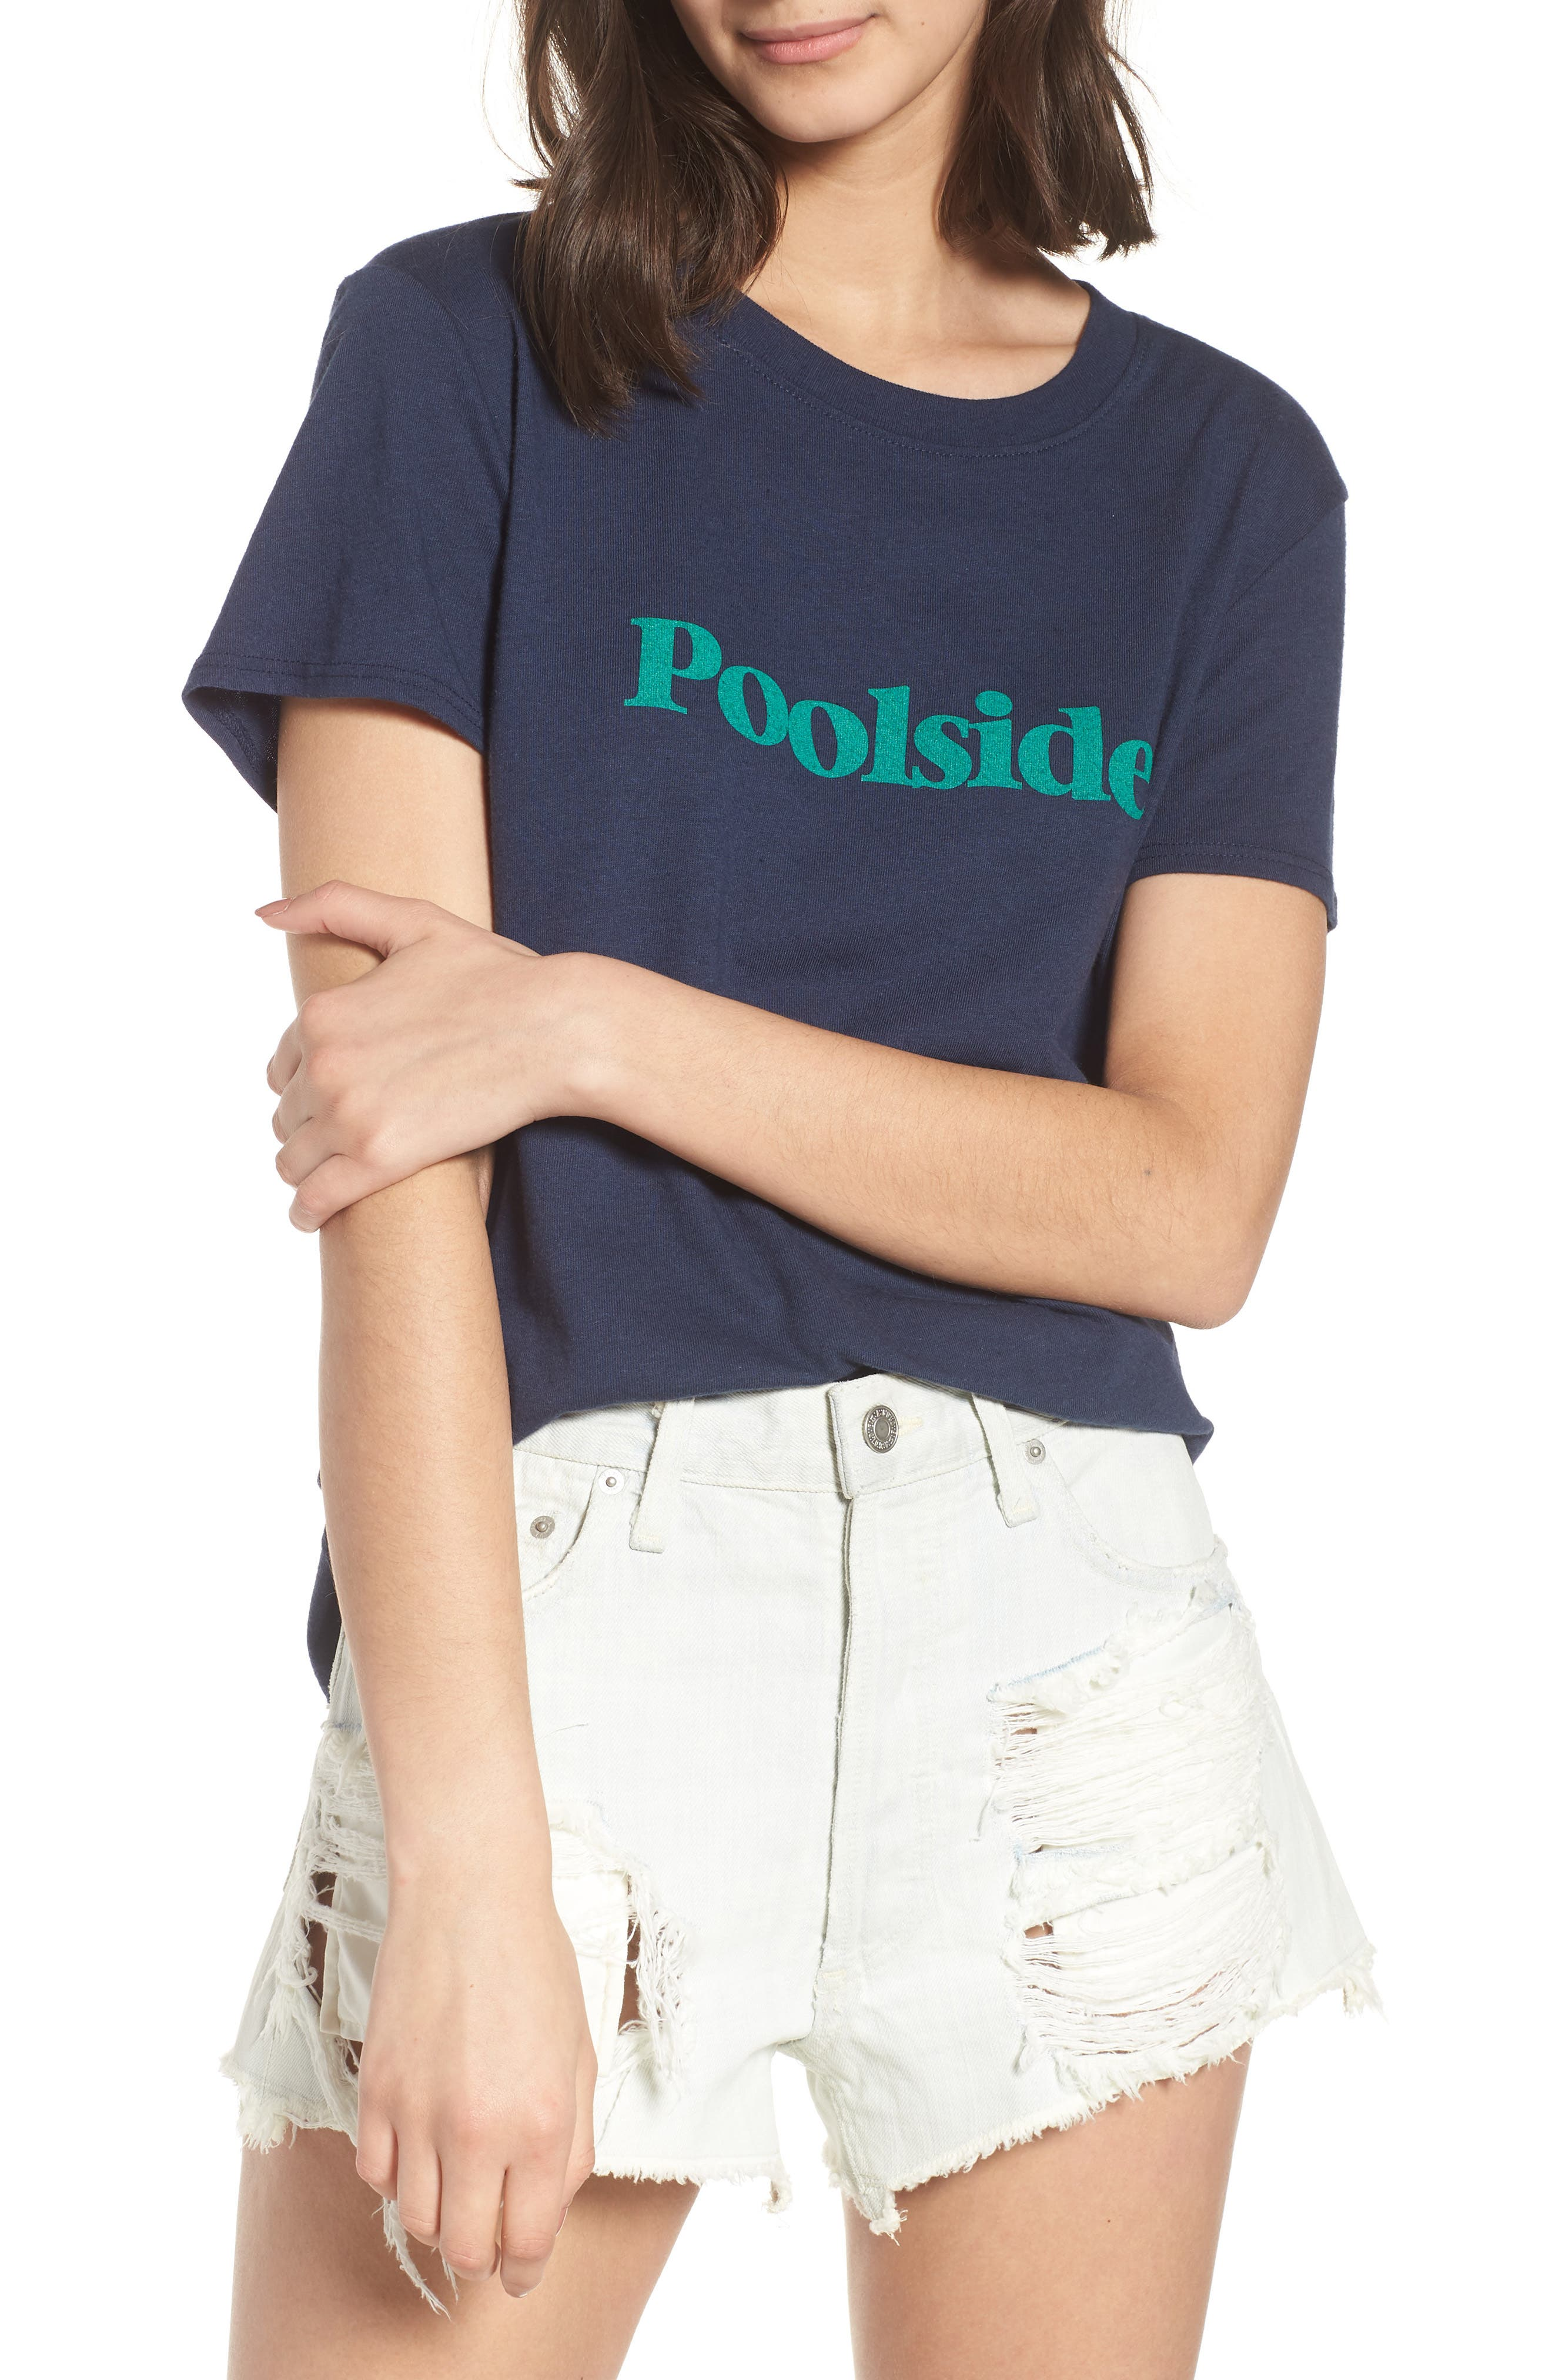 Poolside Graphic Tee,                         Main,                         color, Navy